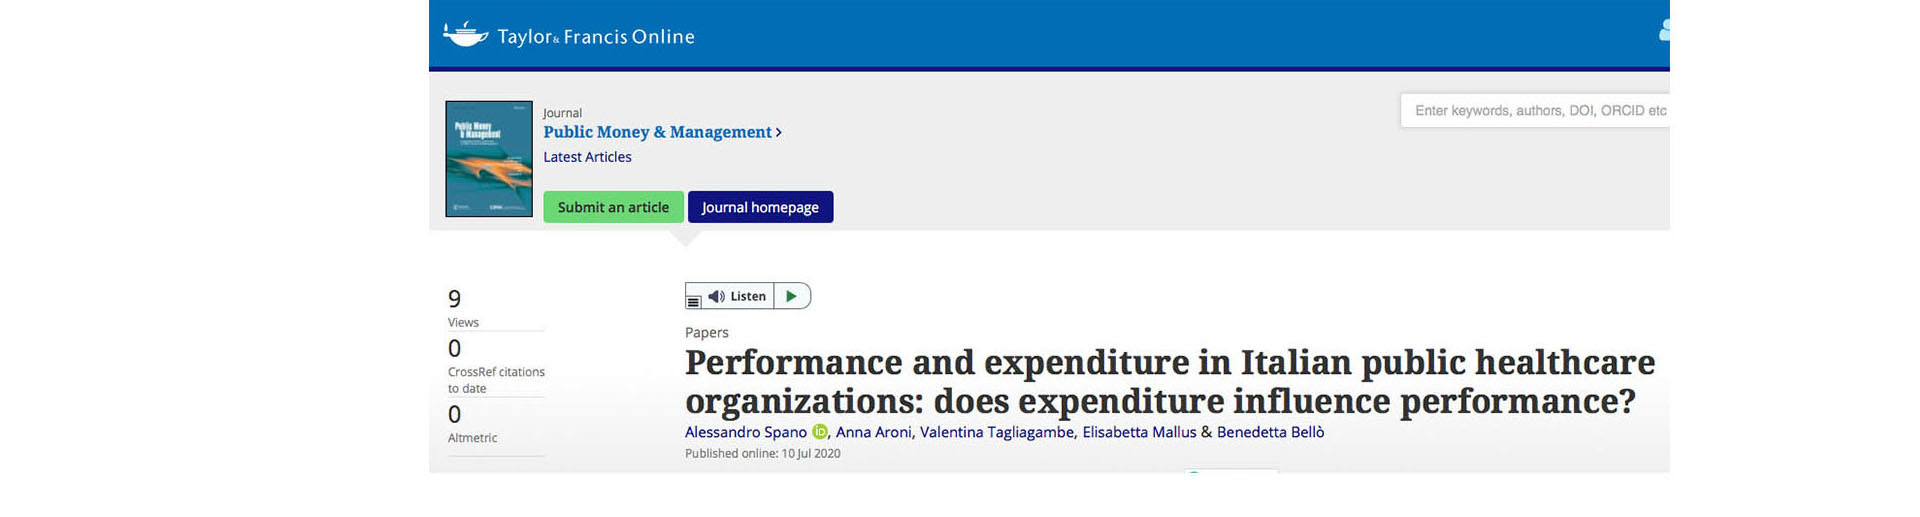 "Disponibile online: ""Performance and expenditure in Italian public healthcare organizations: does expenditure influence performance?"""